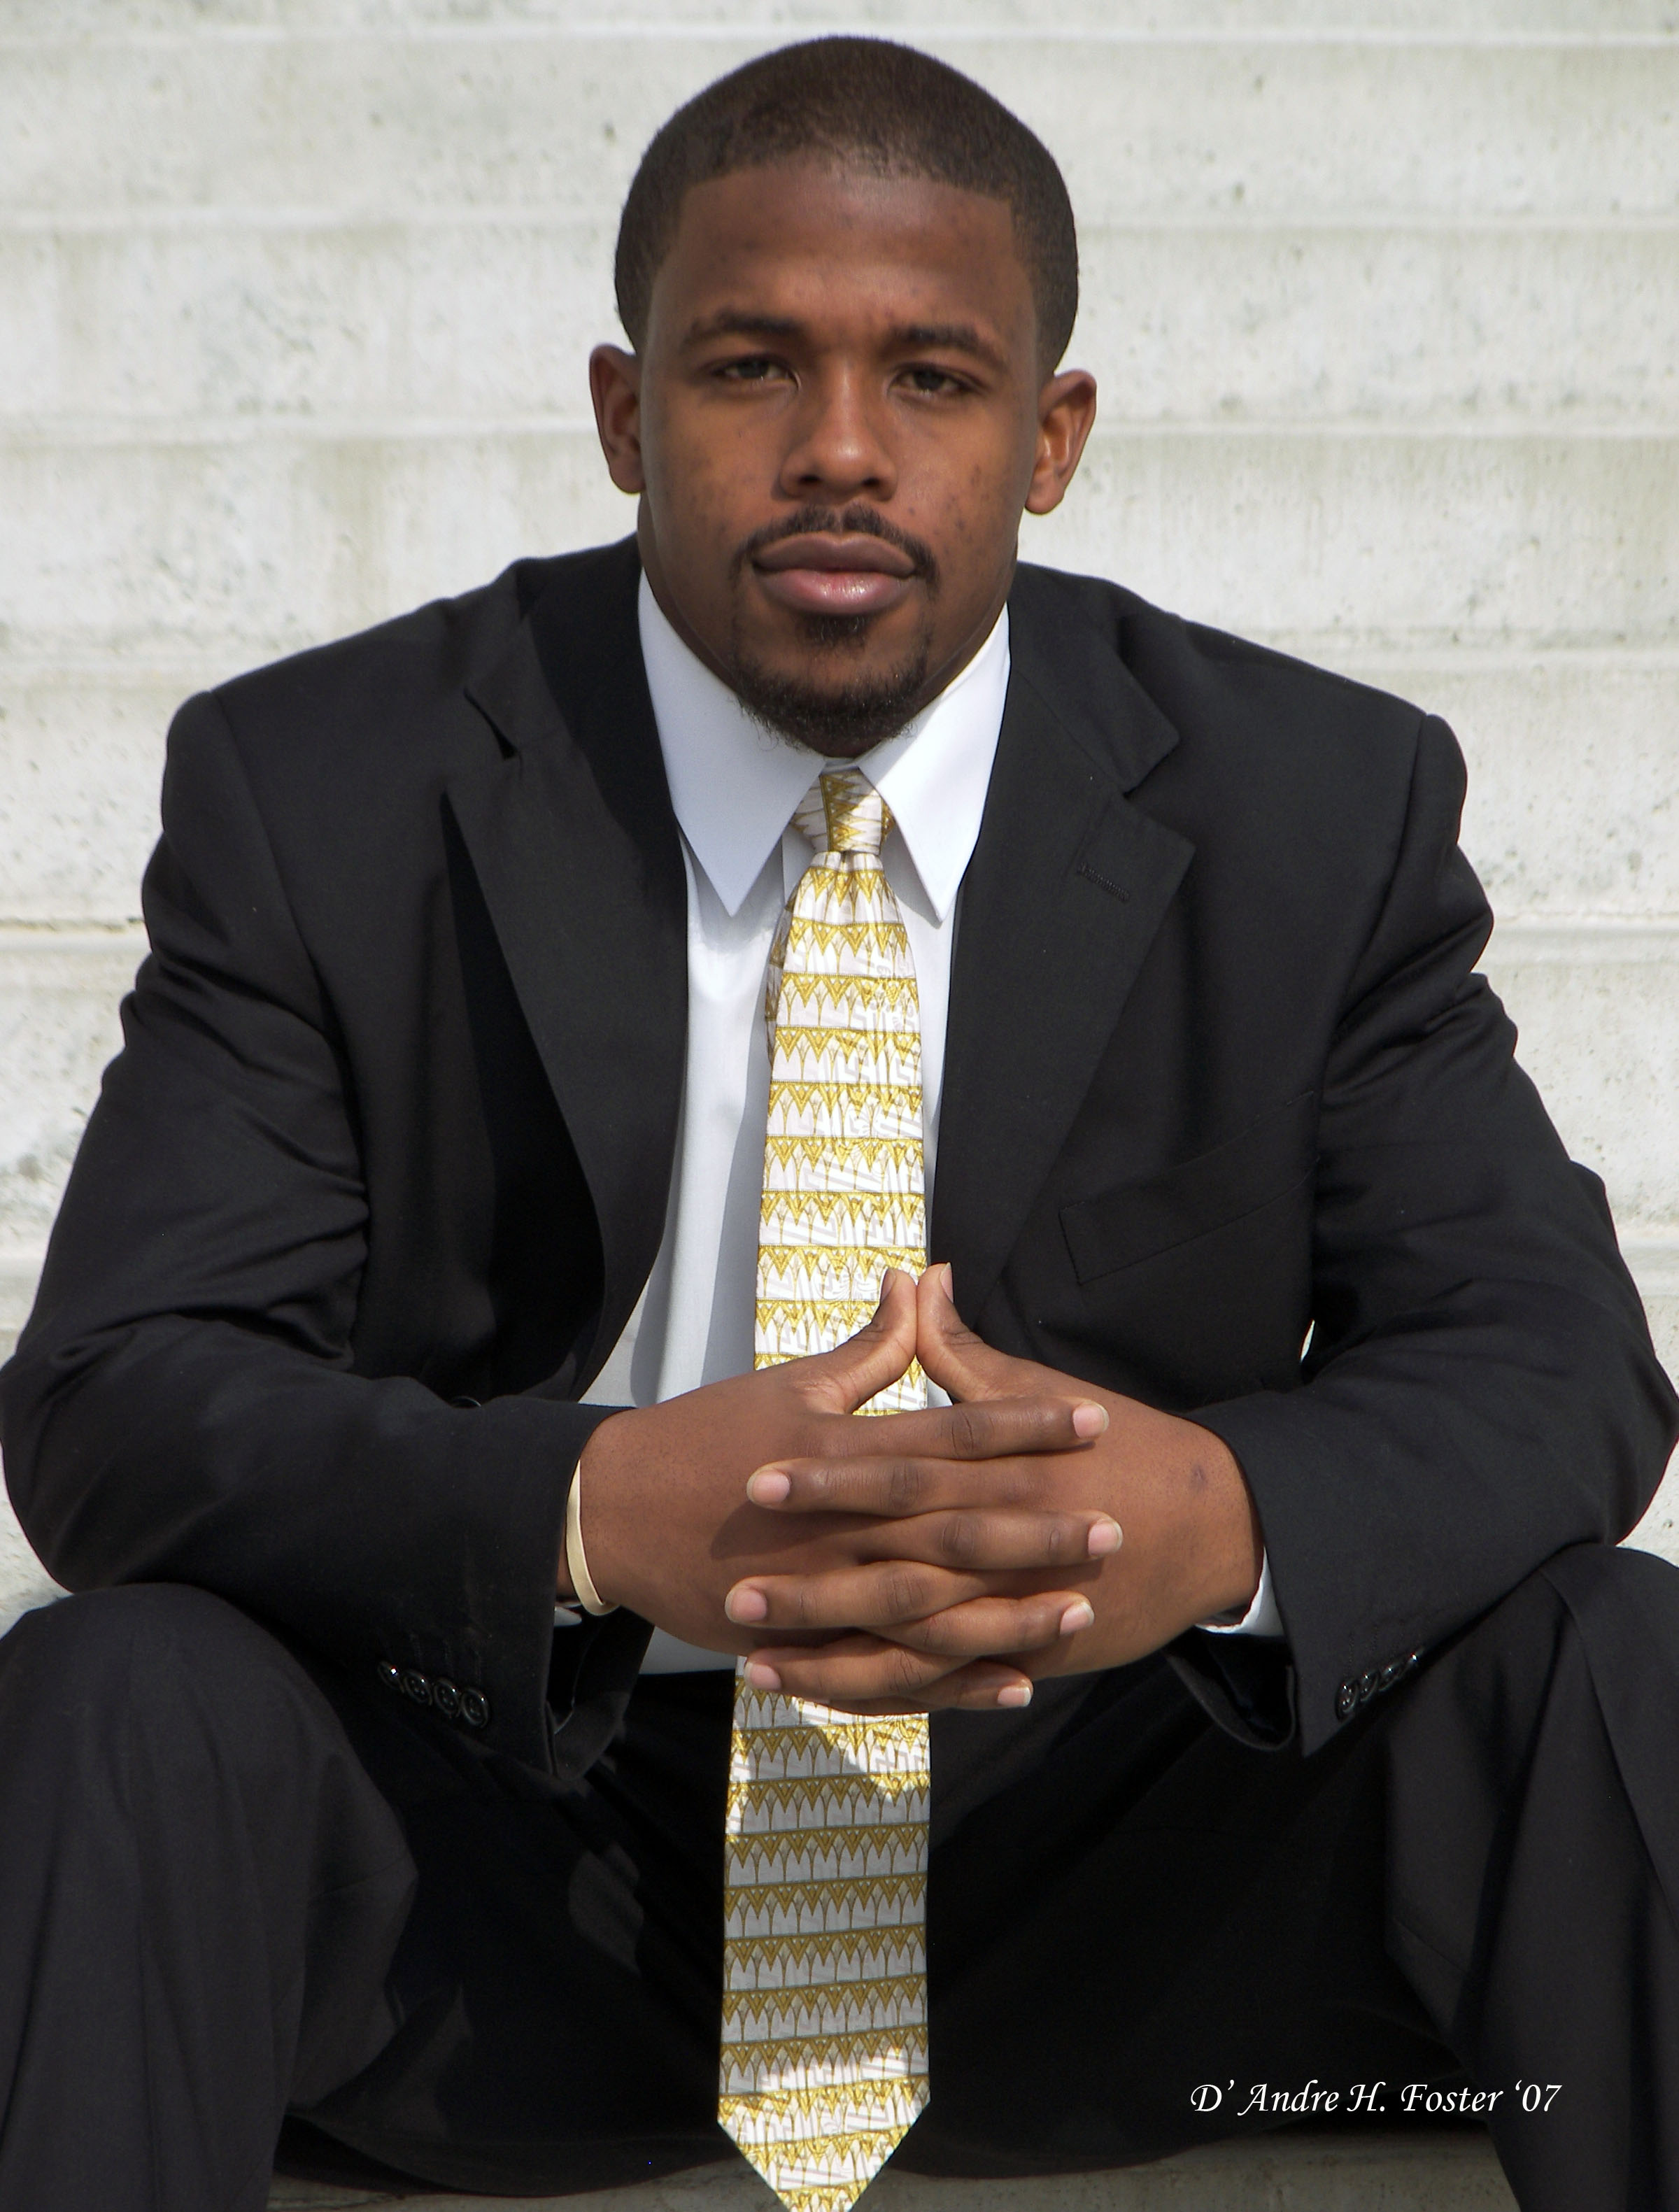 D'Andre Foster